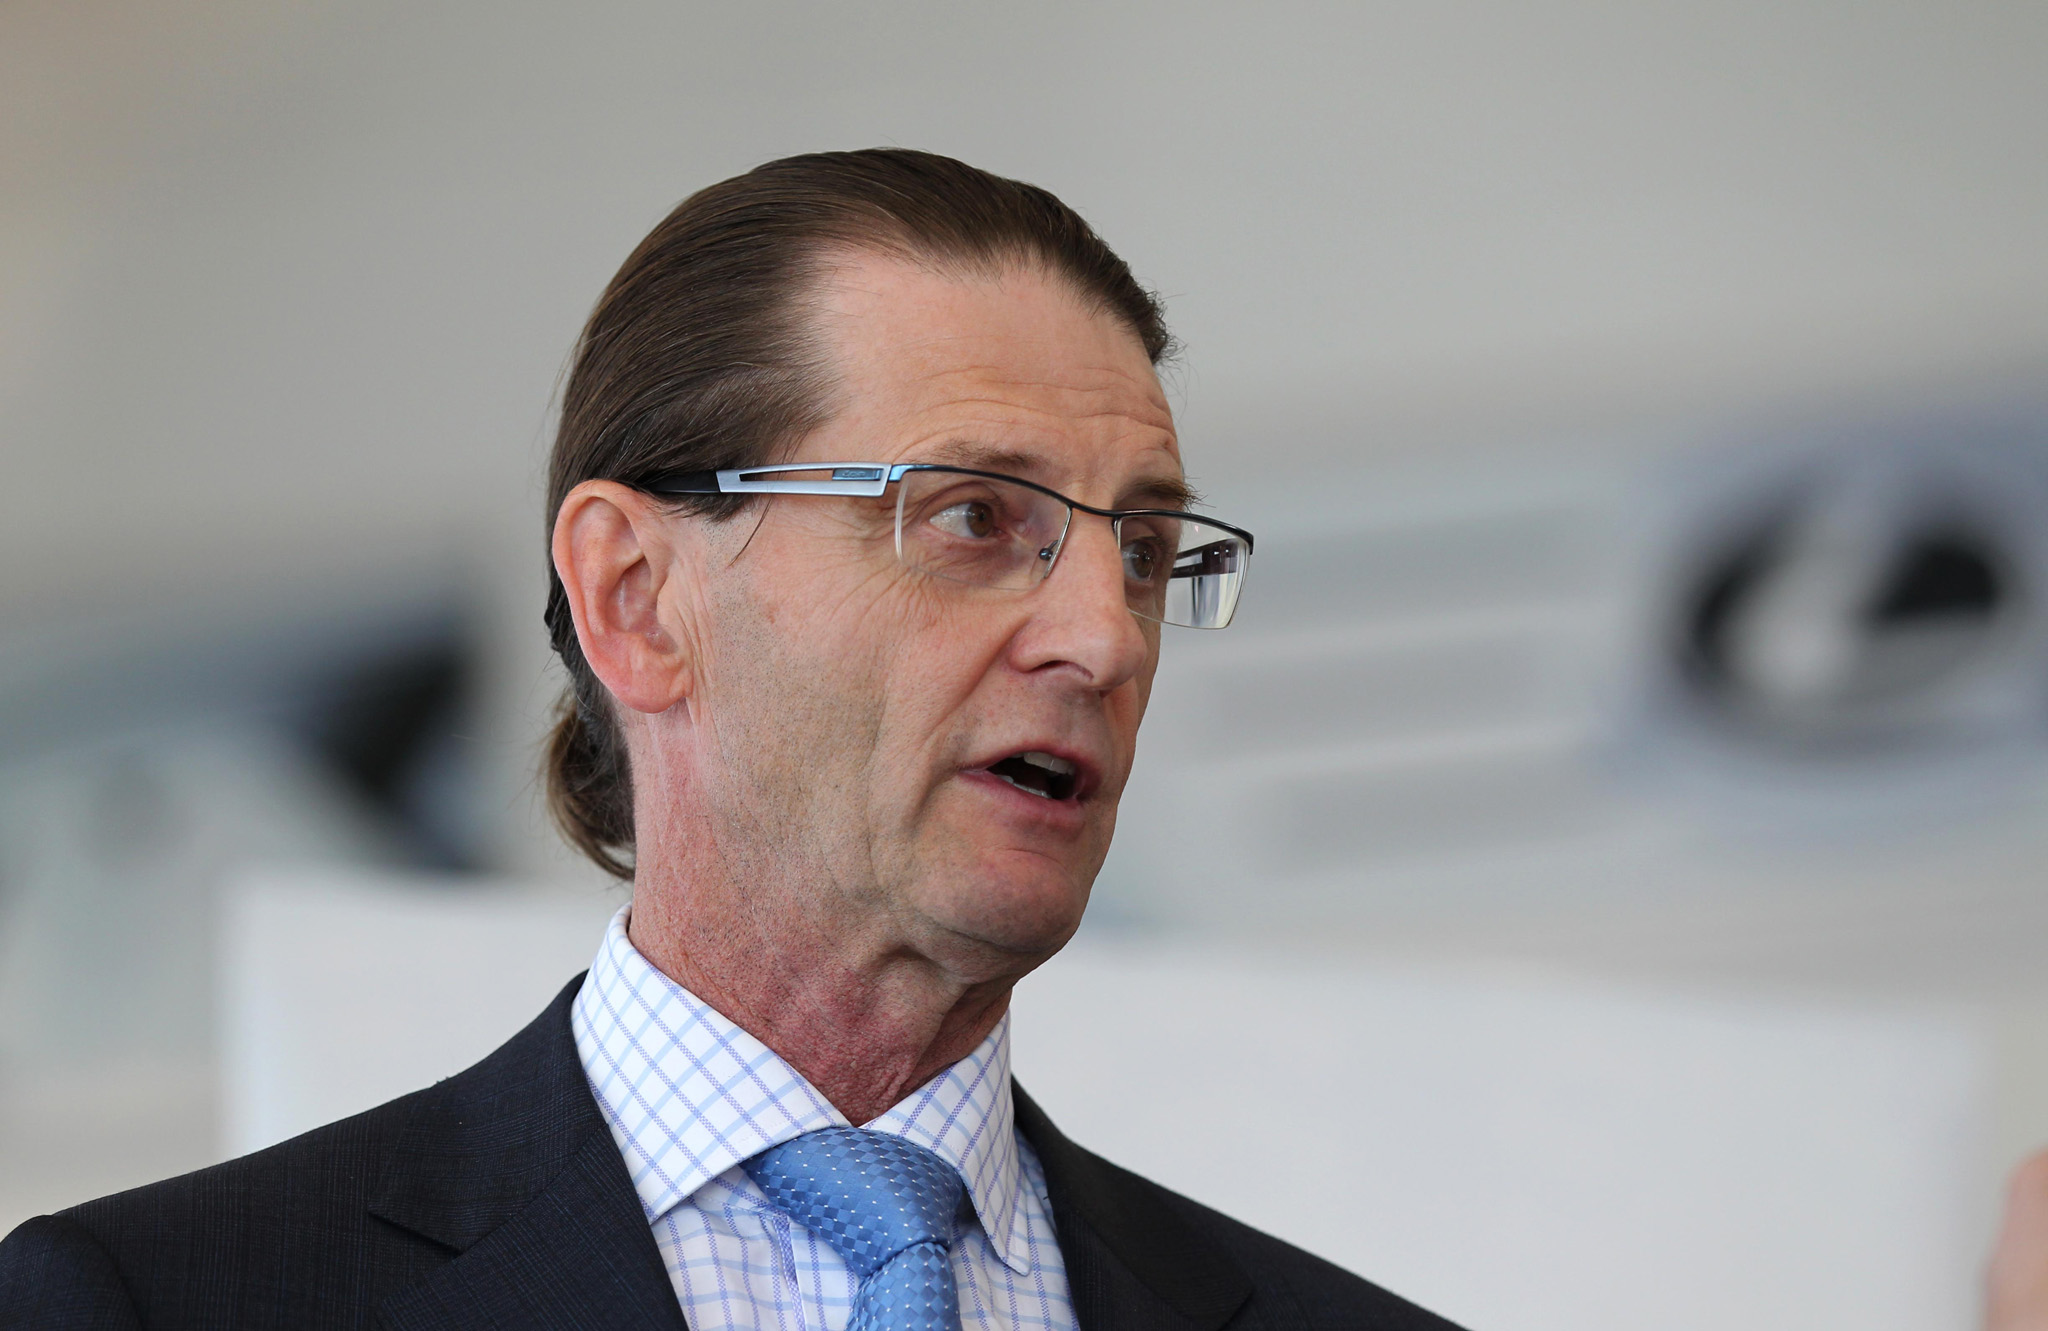 Steve Chipman, Birchwood's CEO, said sales volumes and health concerns make it impossible to continue to operate at full capacity, although all dealerships will remain open. (Ruth Bonneville / Free Press files)